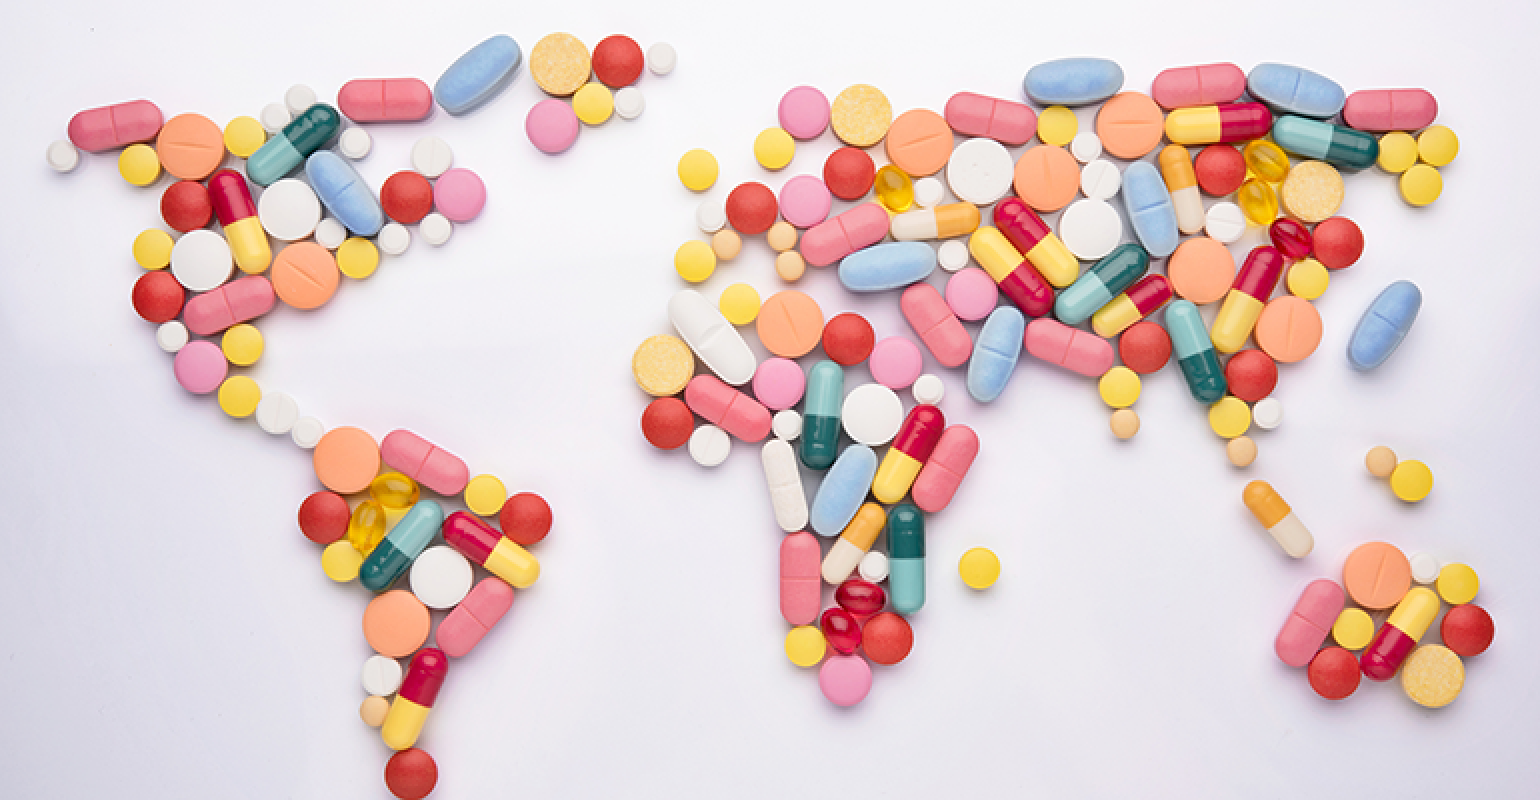 Dietary supplements 2020: A global perspective | New Hope Network